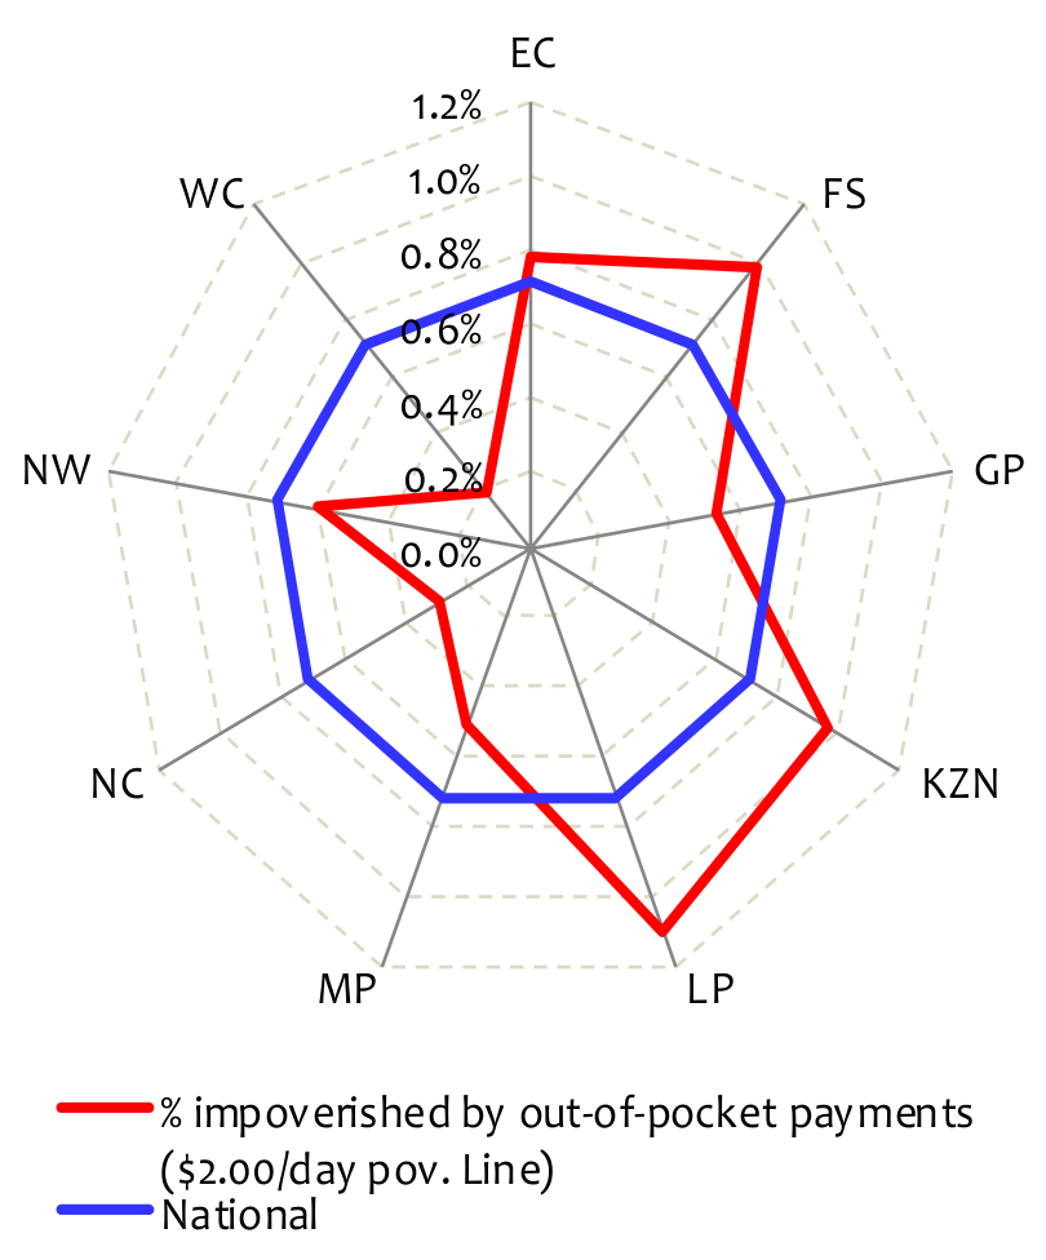 Impoverishment associated with out-of-pocket payments by province in South Africa, 2005/2006.